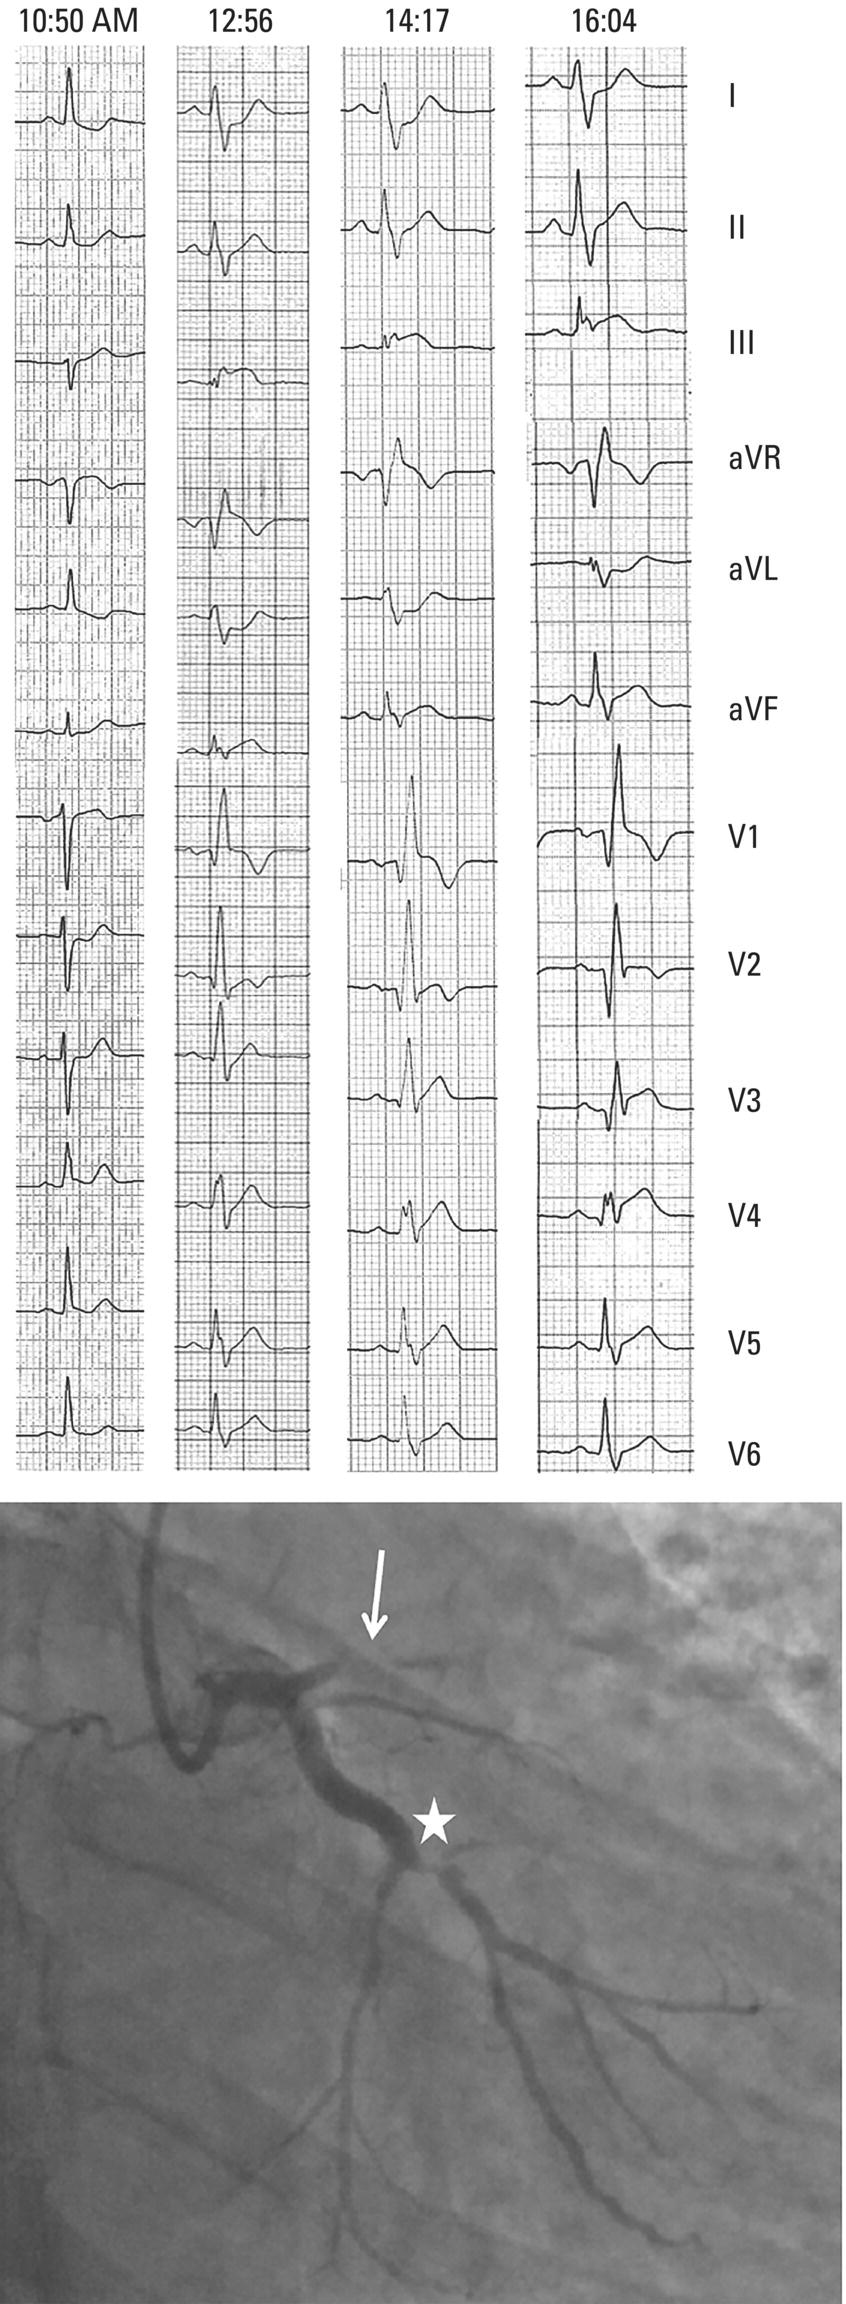 Schematic illustration of a 46-year-old man who presented to a health center for chest pain that started one hour before (at 9 AM). .